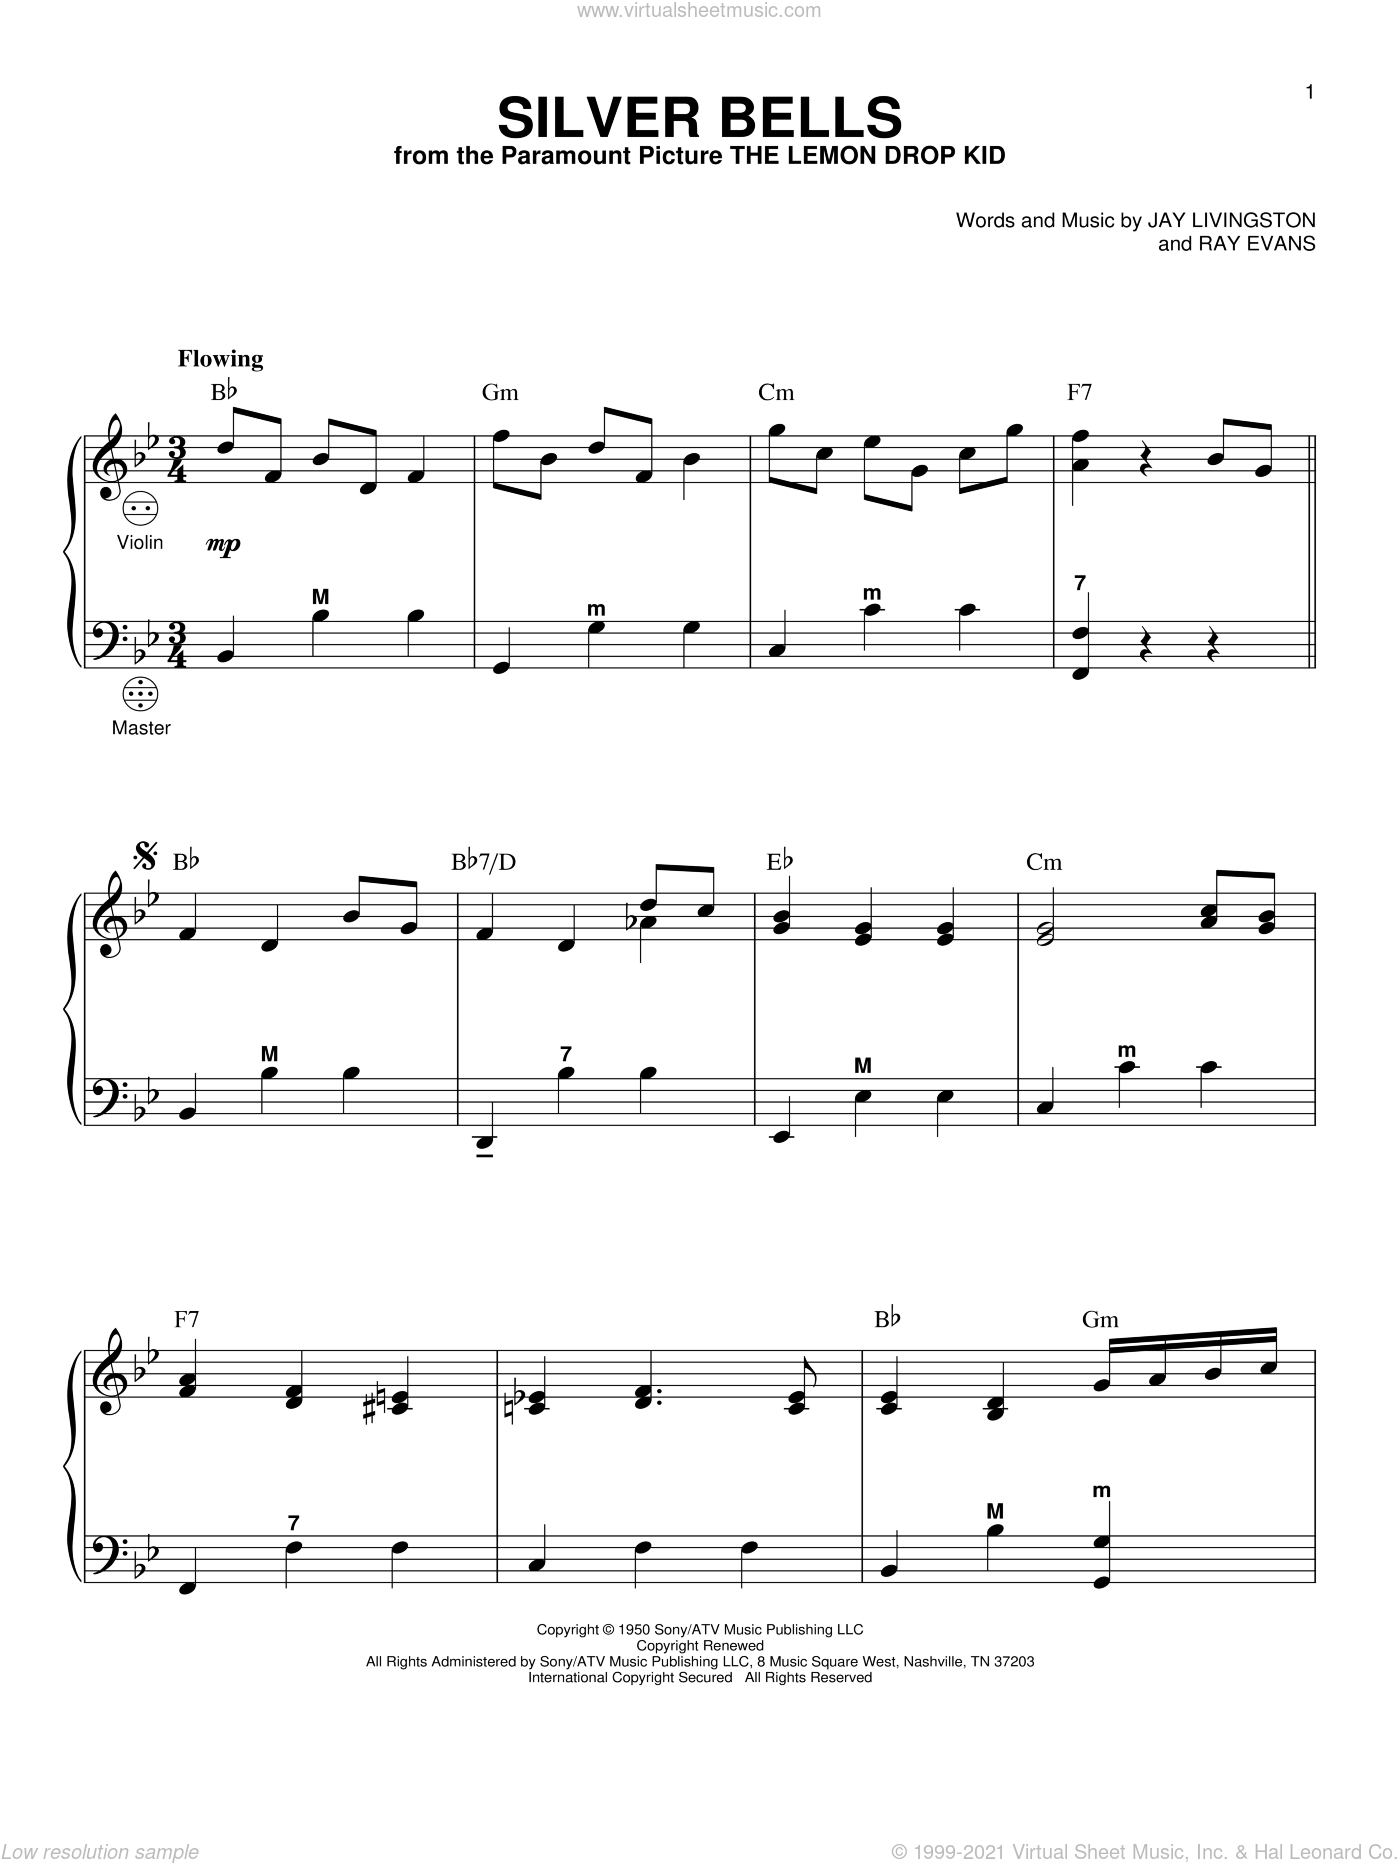 Silver Bells sheet music for accordion by Jay Livingston and Ray Evans, intermediate skill level